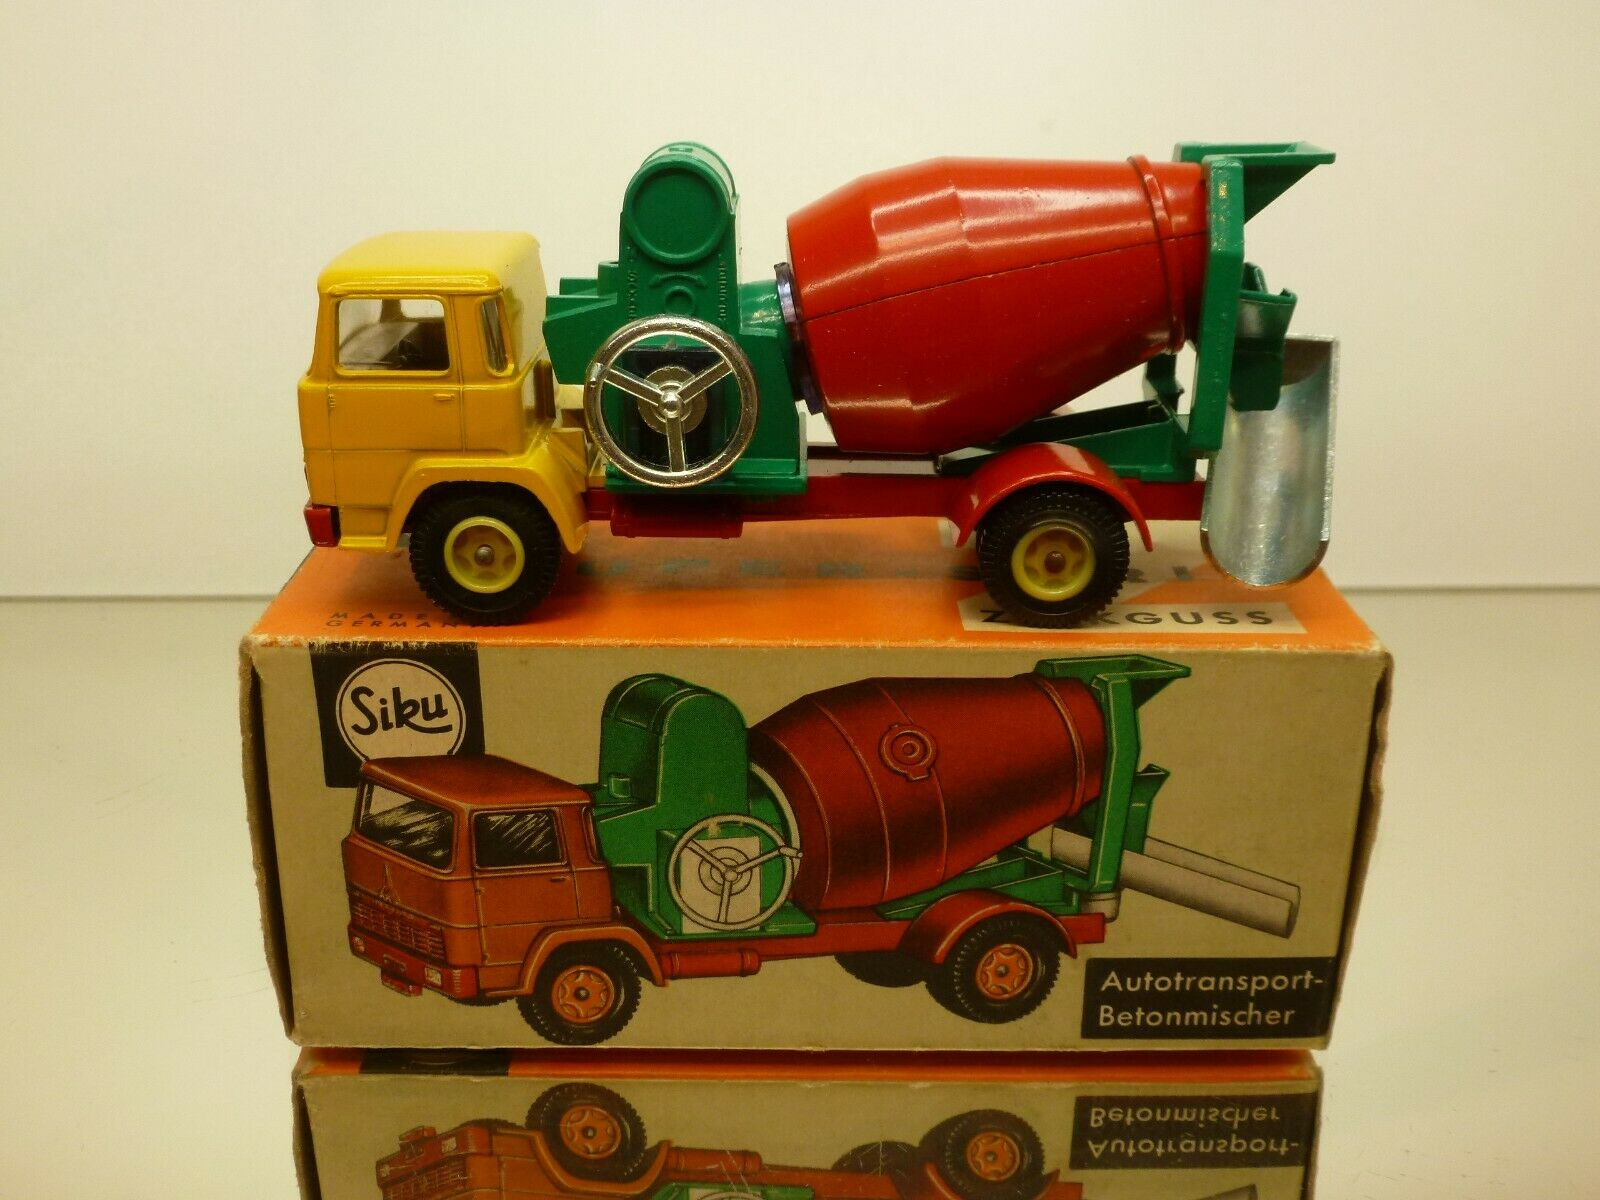 SIKU 291 DEUTZ TRUCK CONCRETE MIXER BETONMISCHER - RARE - EXCELLENT IN BOX